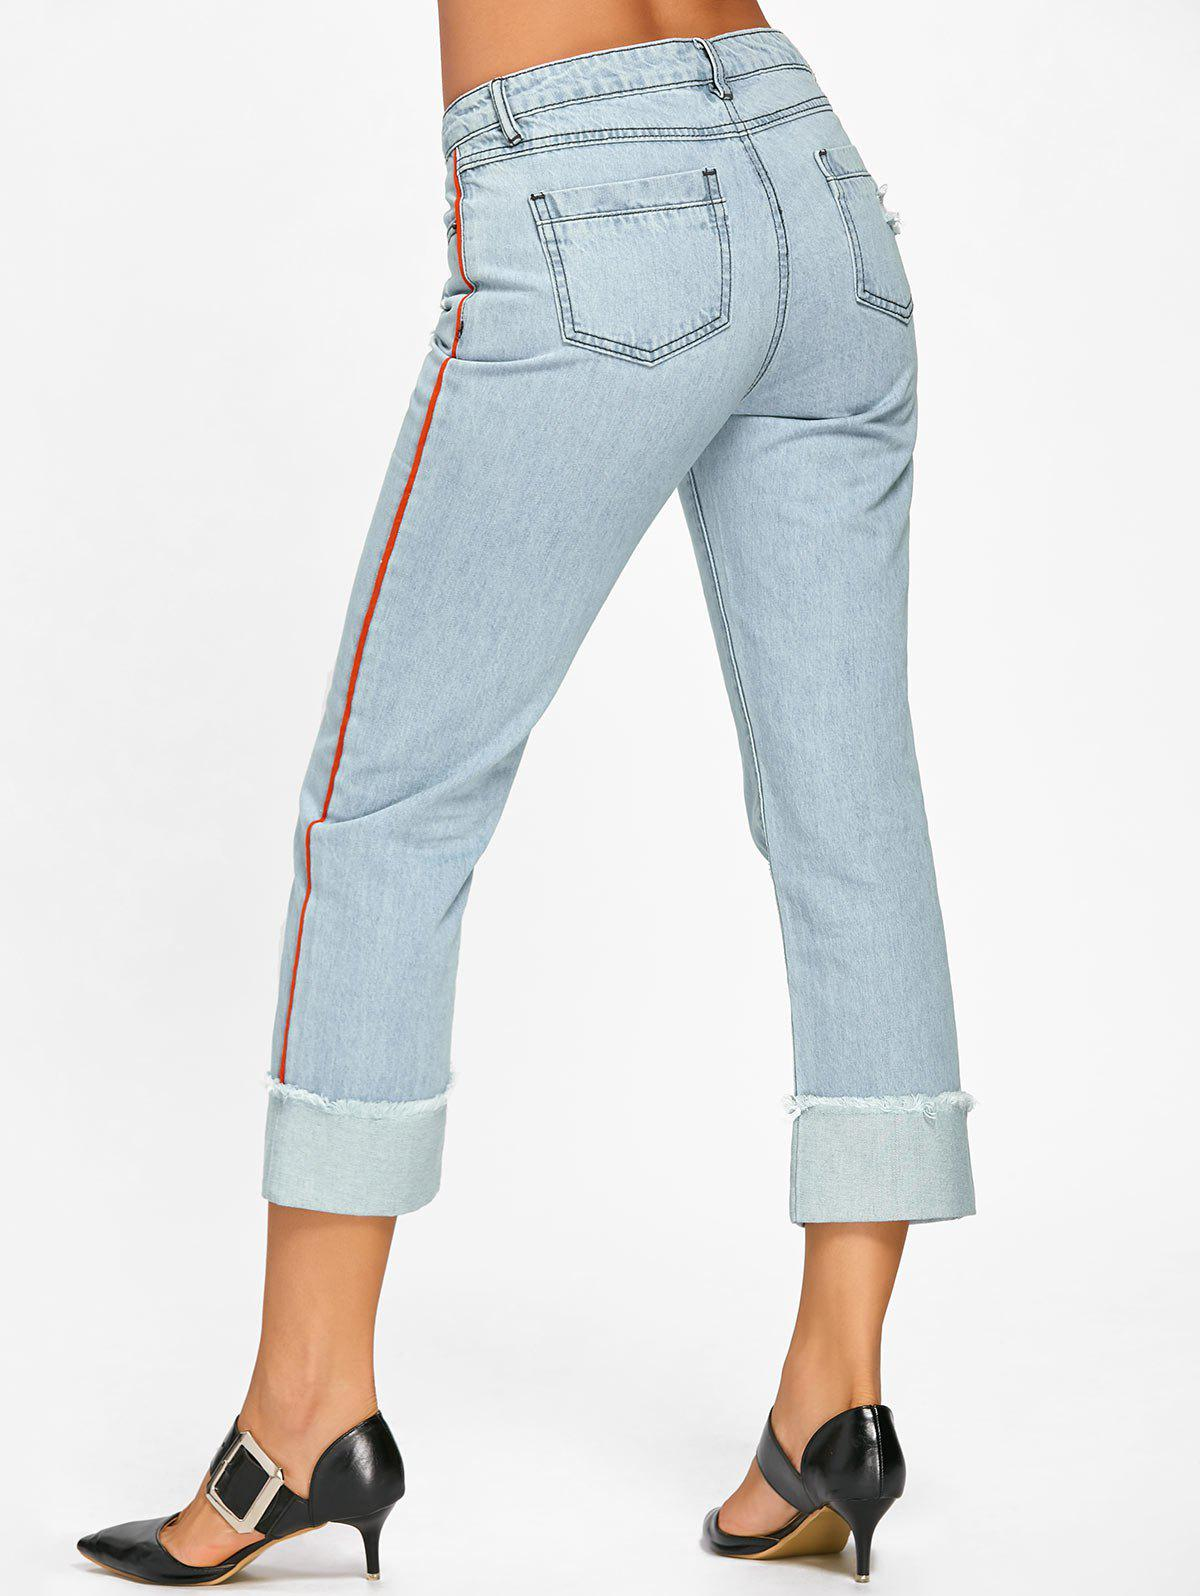 Frayed Faded Cuffed Jeans - LIGHT BLUE 2XL